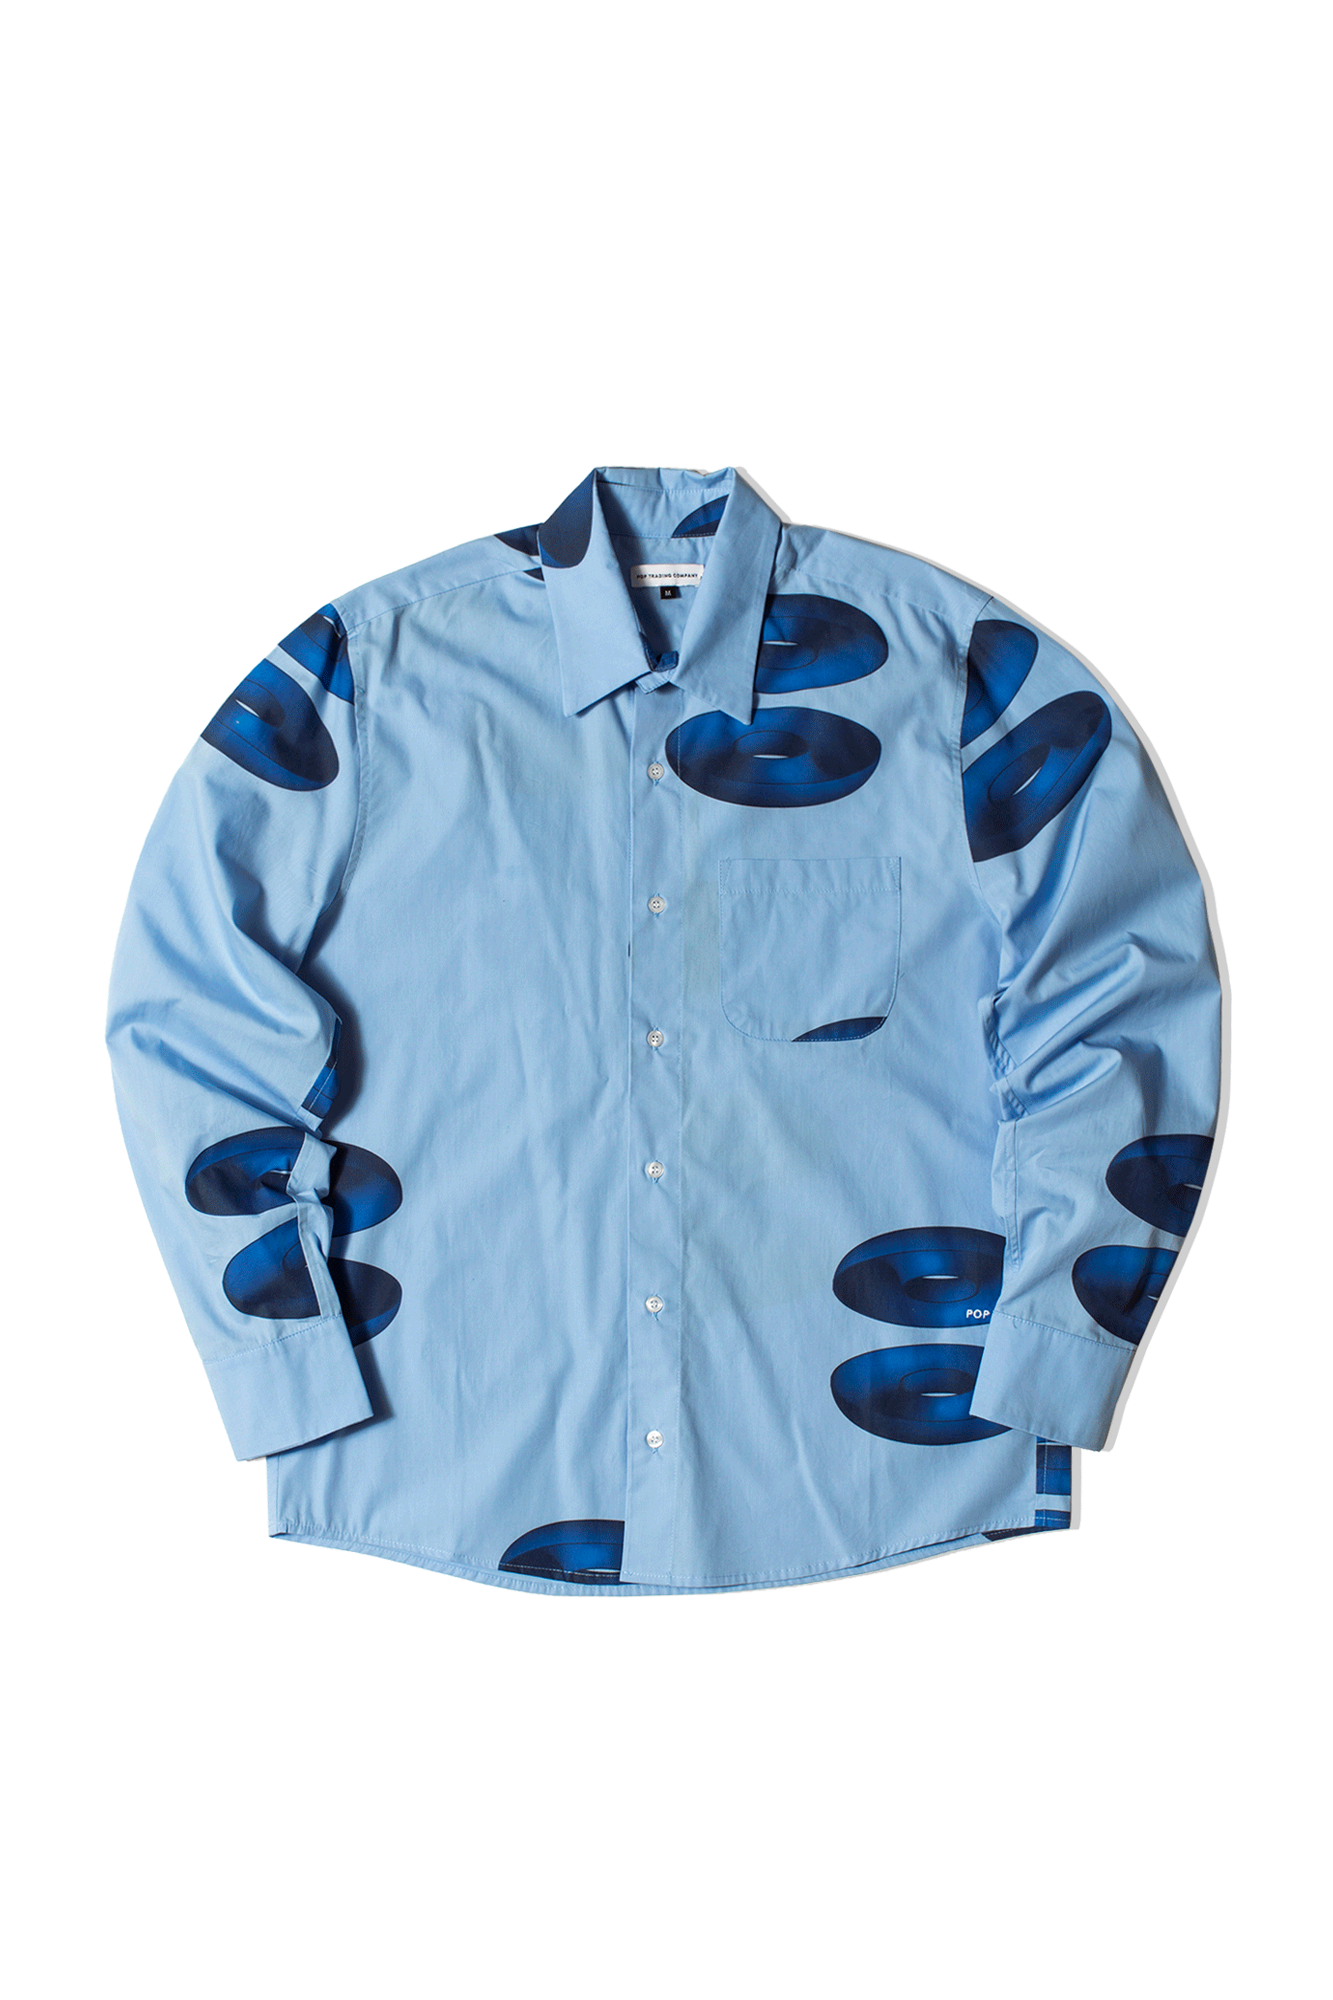 Thomas Van Rijs Shirt Blu